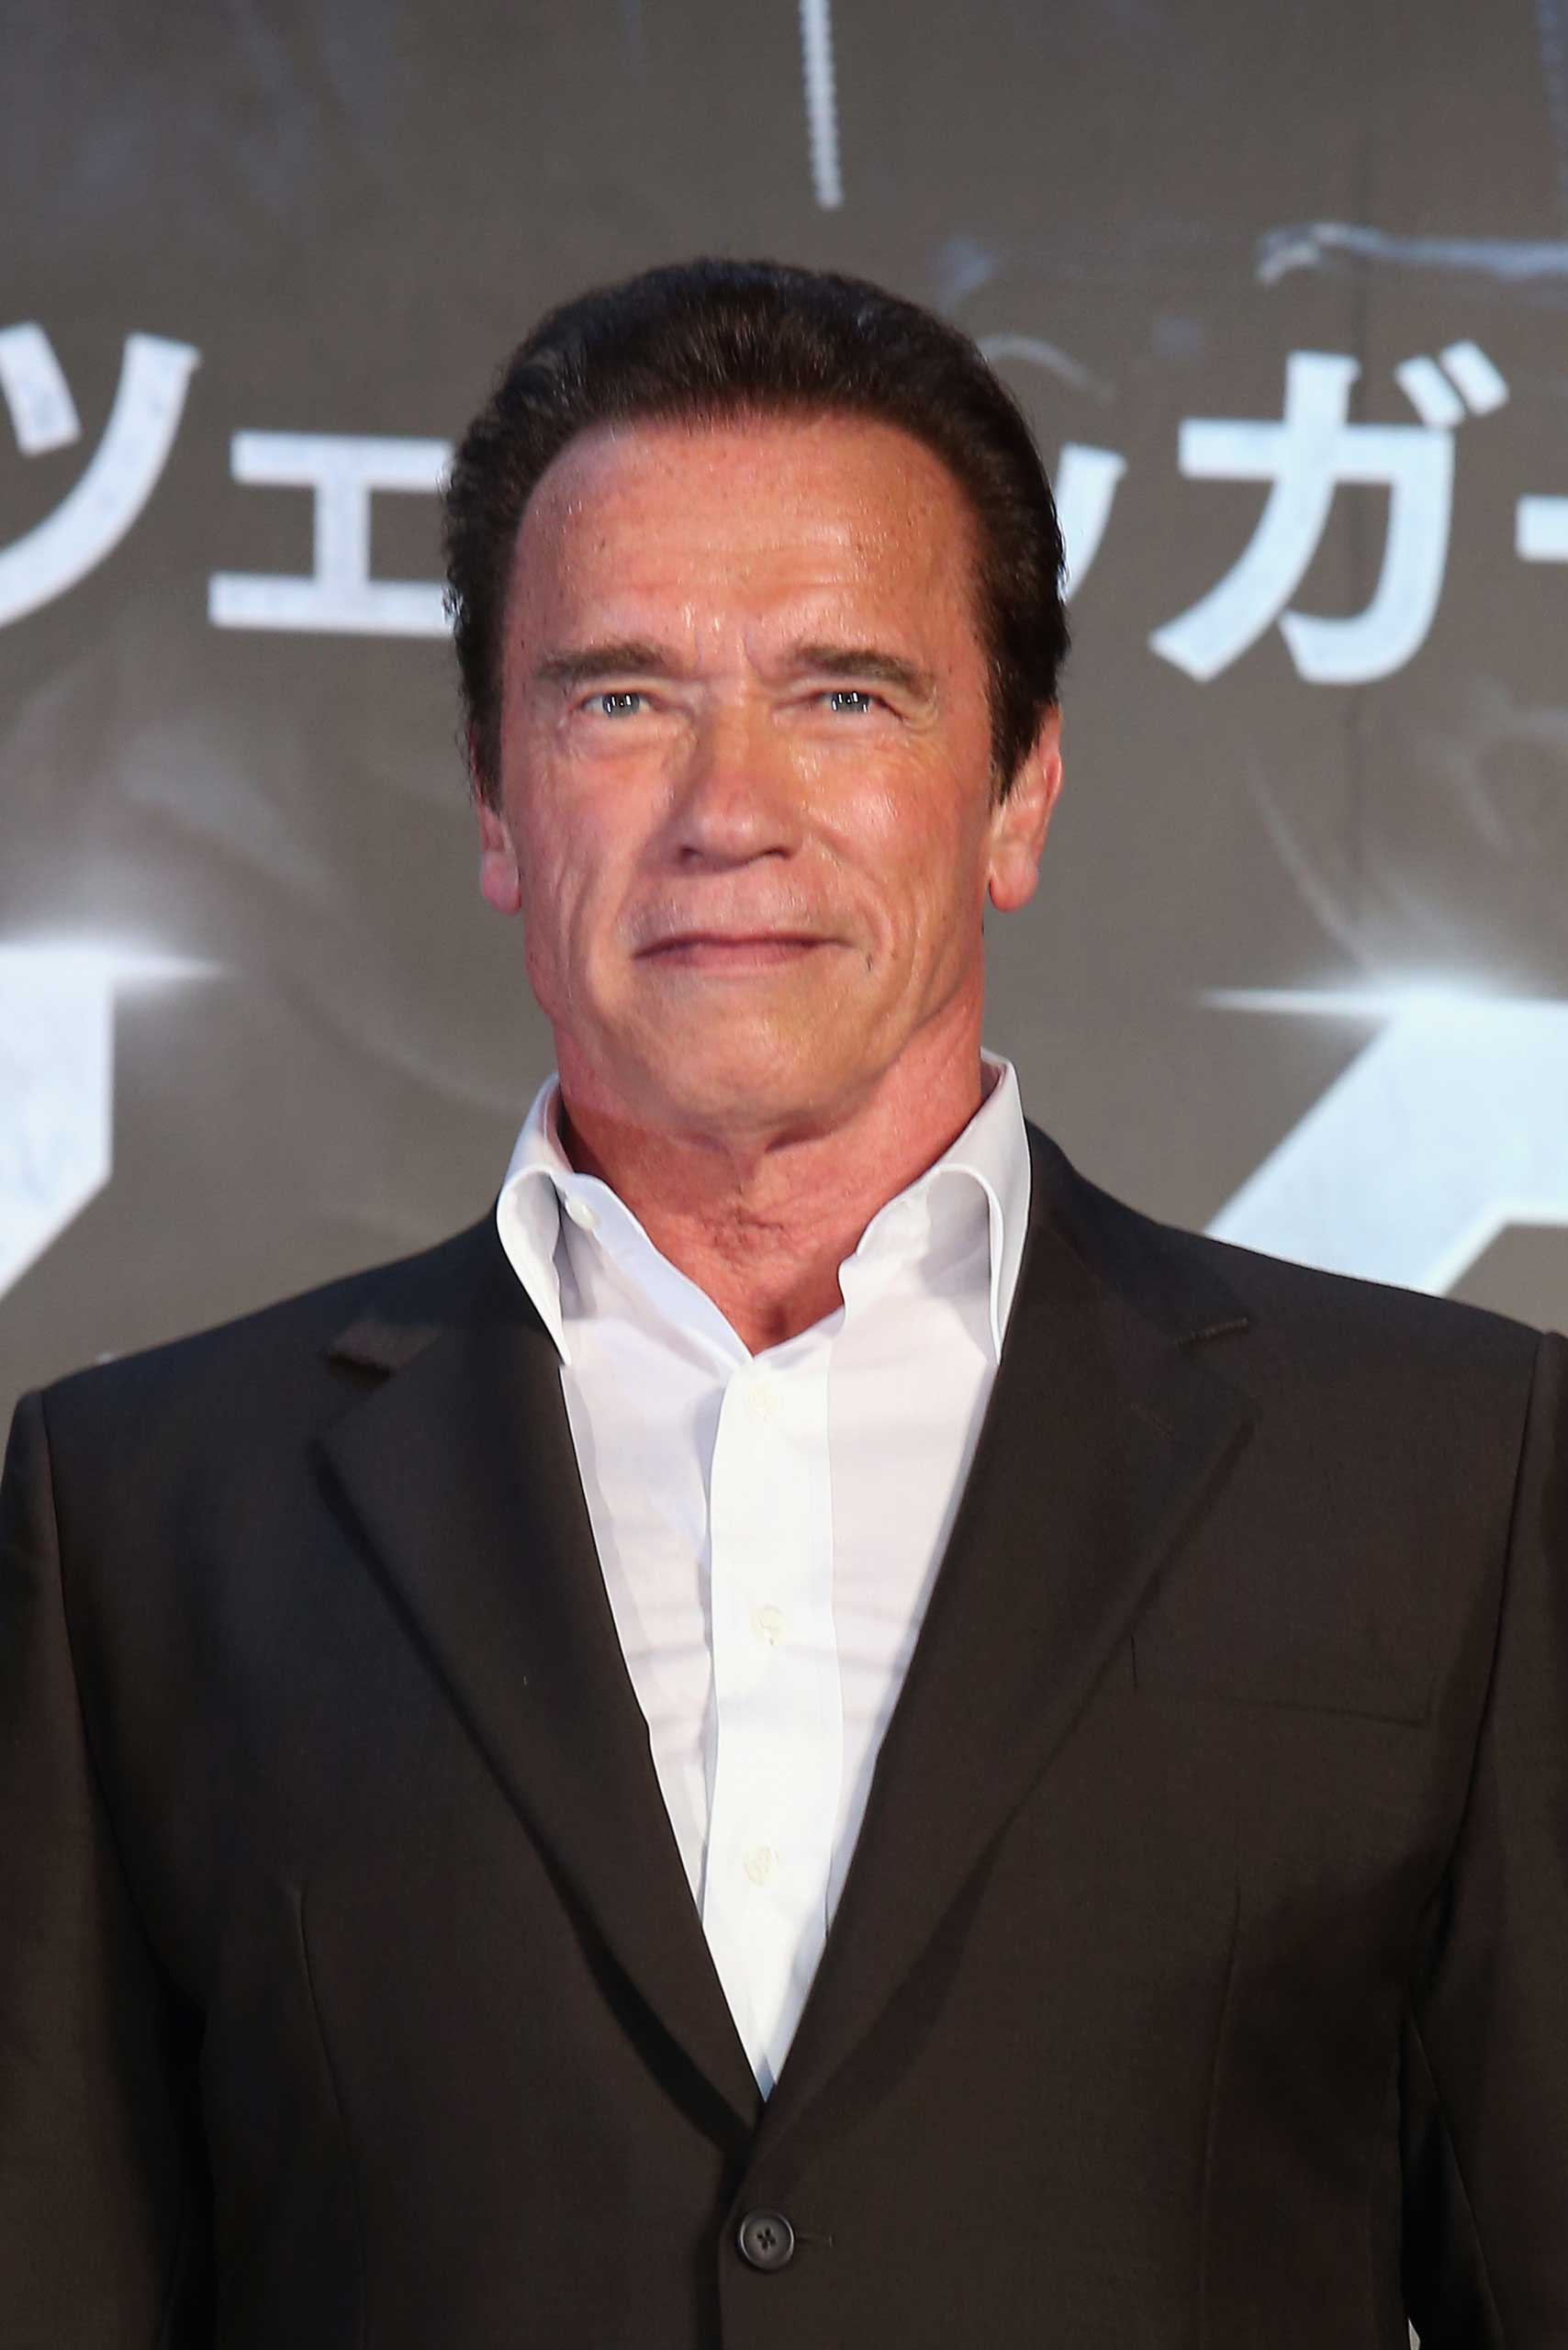 Arnold Schwarzenegger attends the Tokyo Premiere of 'Terminator Genisys' at the Roppongi Hills Arena in Tokyo, on July 6, 2015